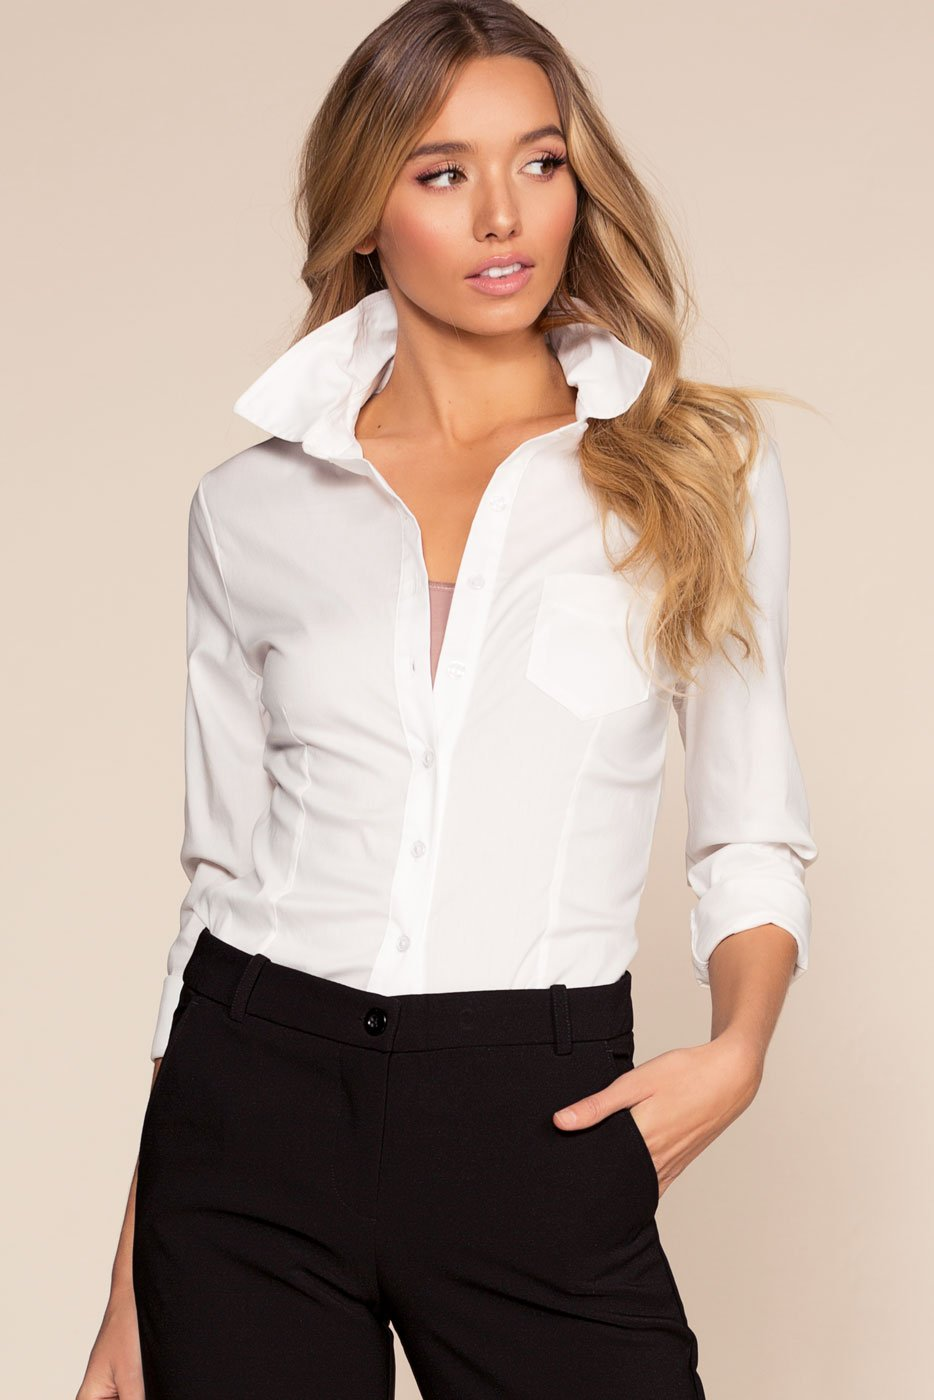 Tops - Clean Chic Top - White